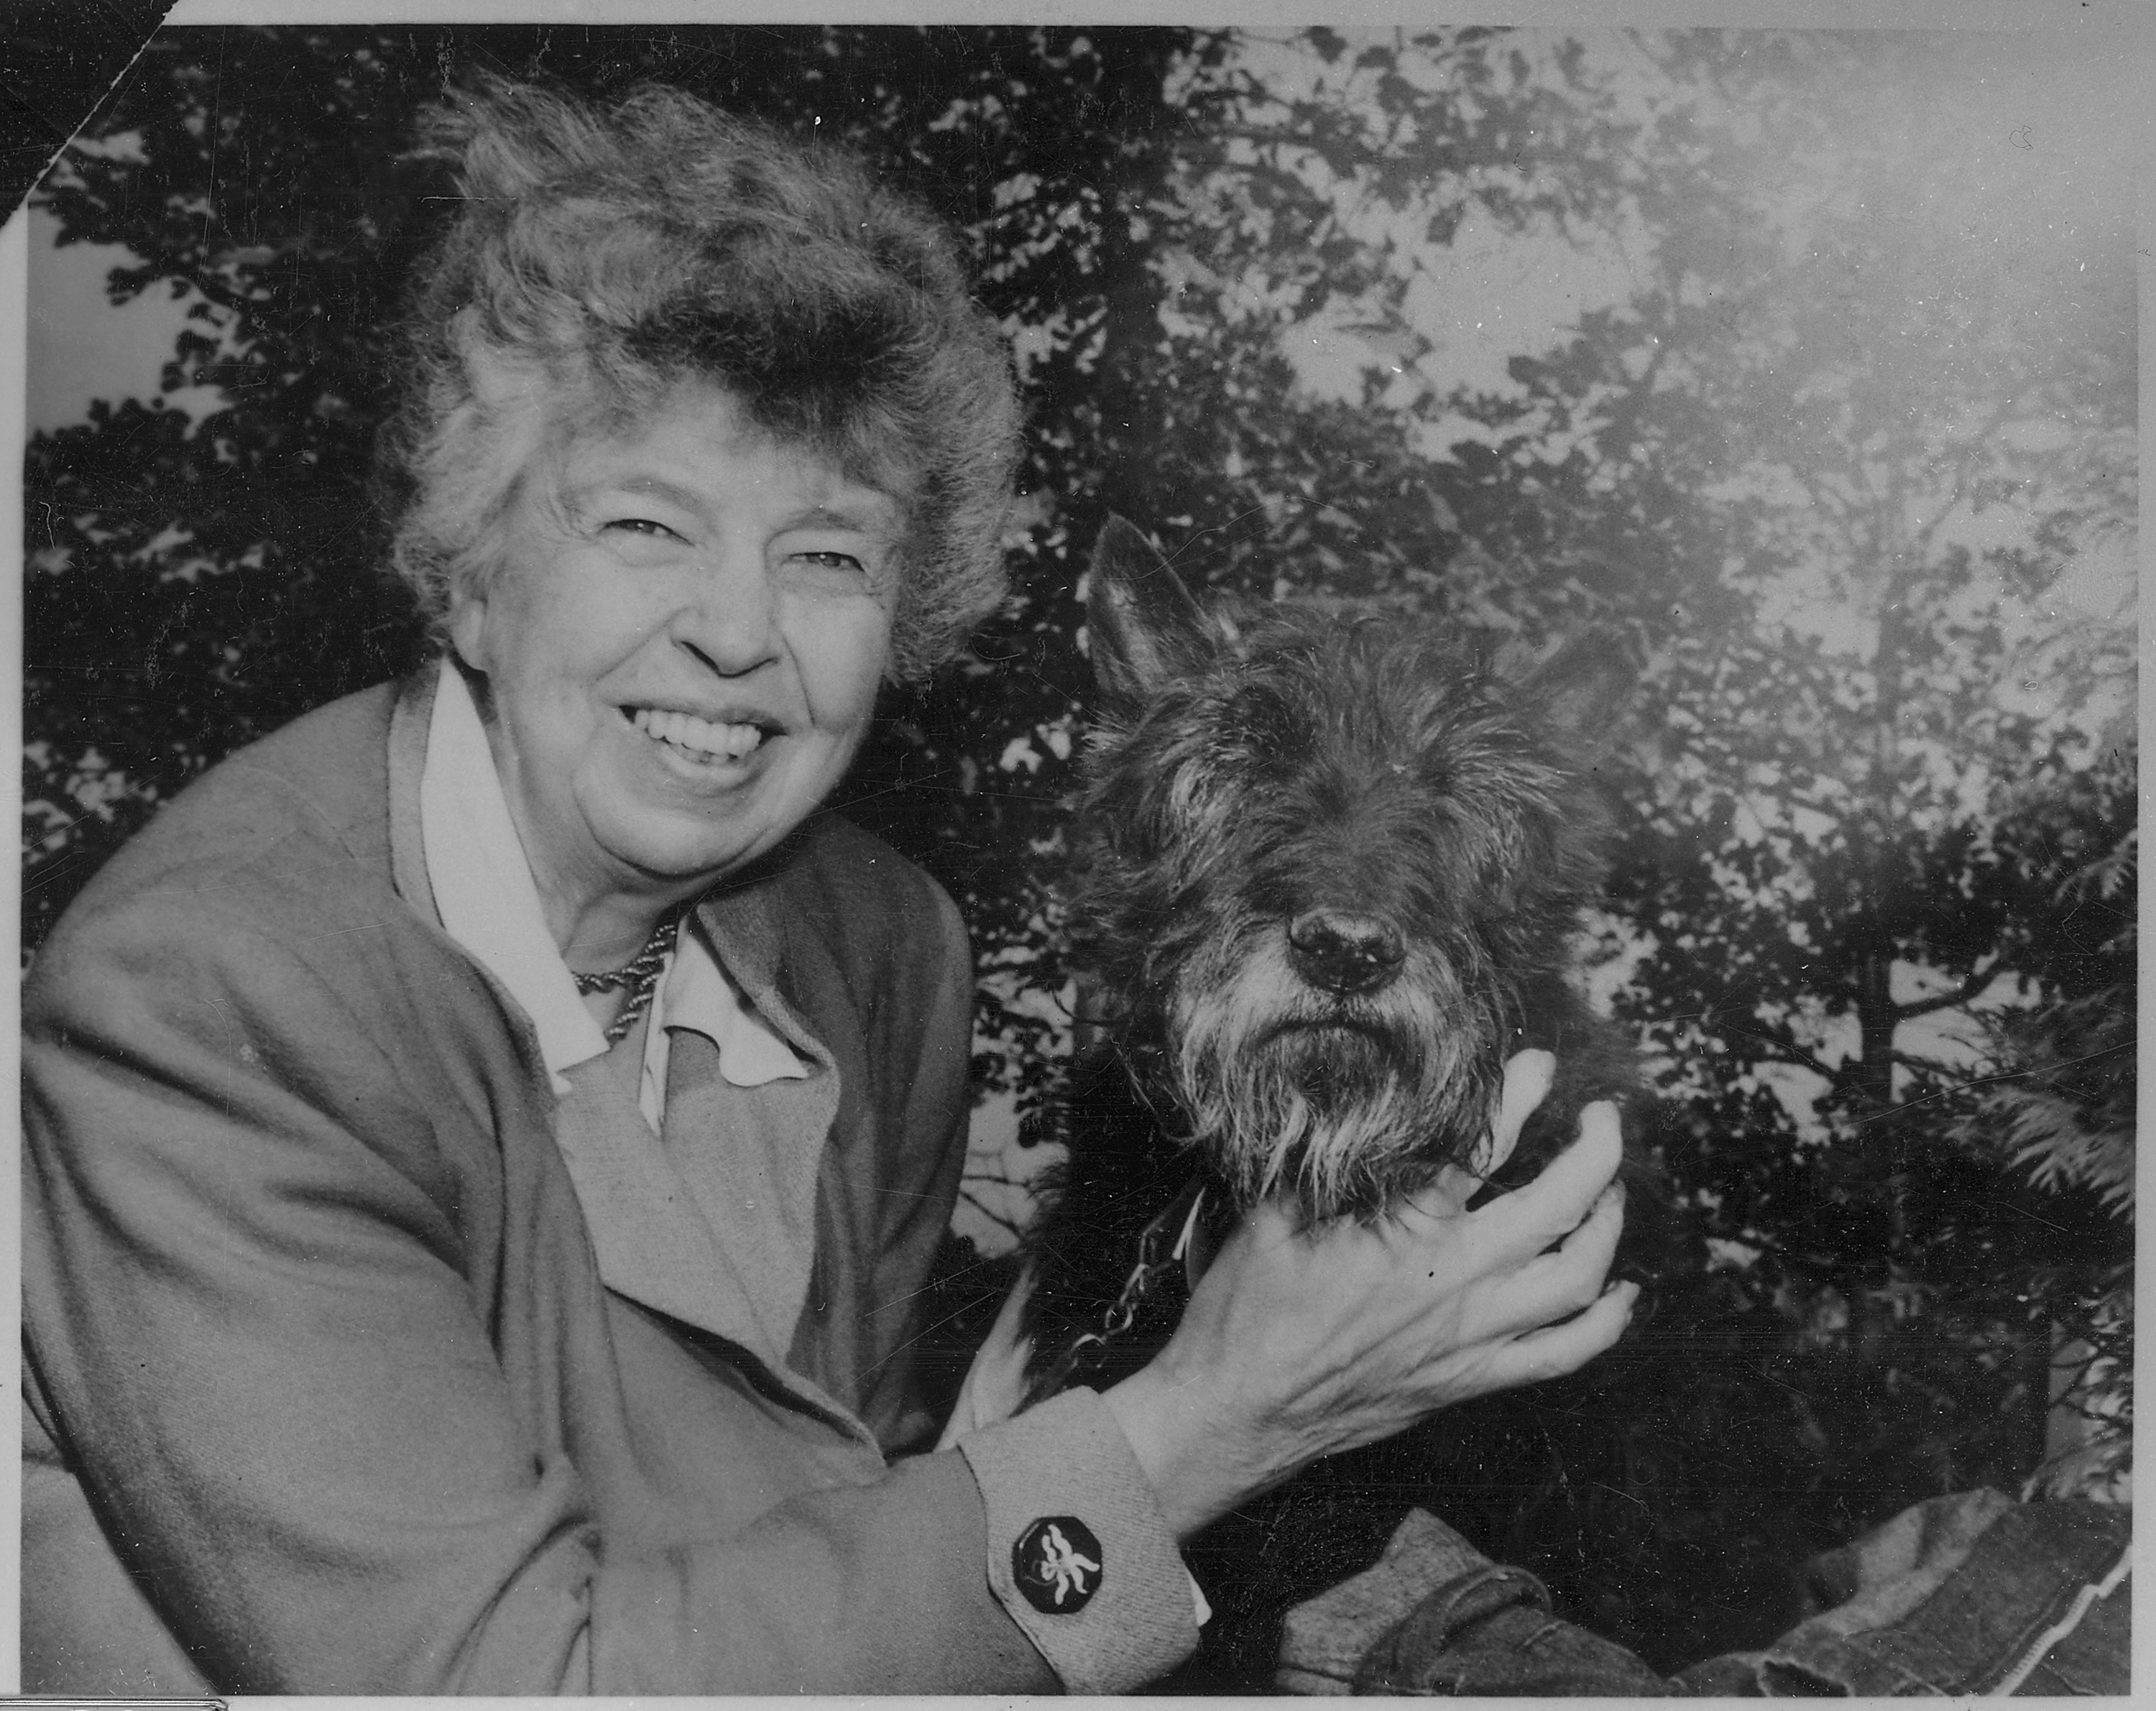 https://upload.wikimedia.org/wikipedia/commons/8/8a/Eleanor_Roosevelt_and_Fala_at_Val,Kill_in_Hyde_Park,_New_York_-_NARA_-_196181.jpg